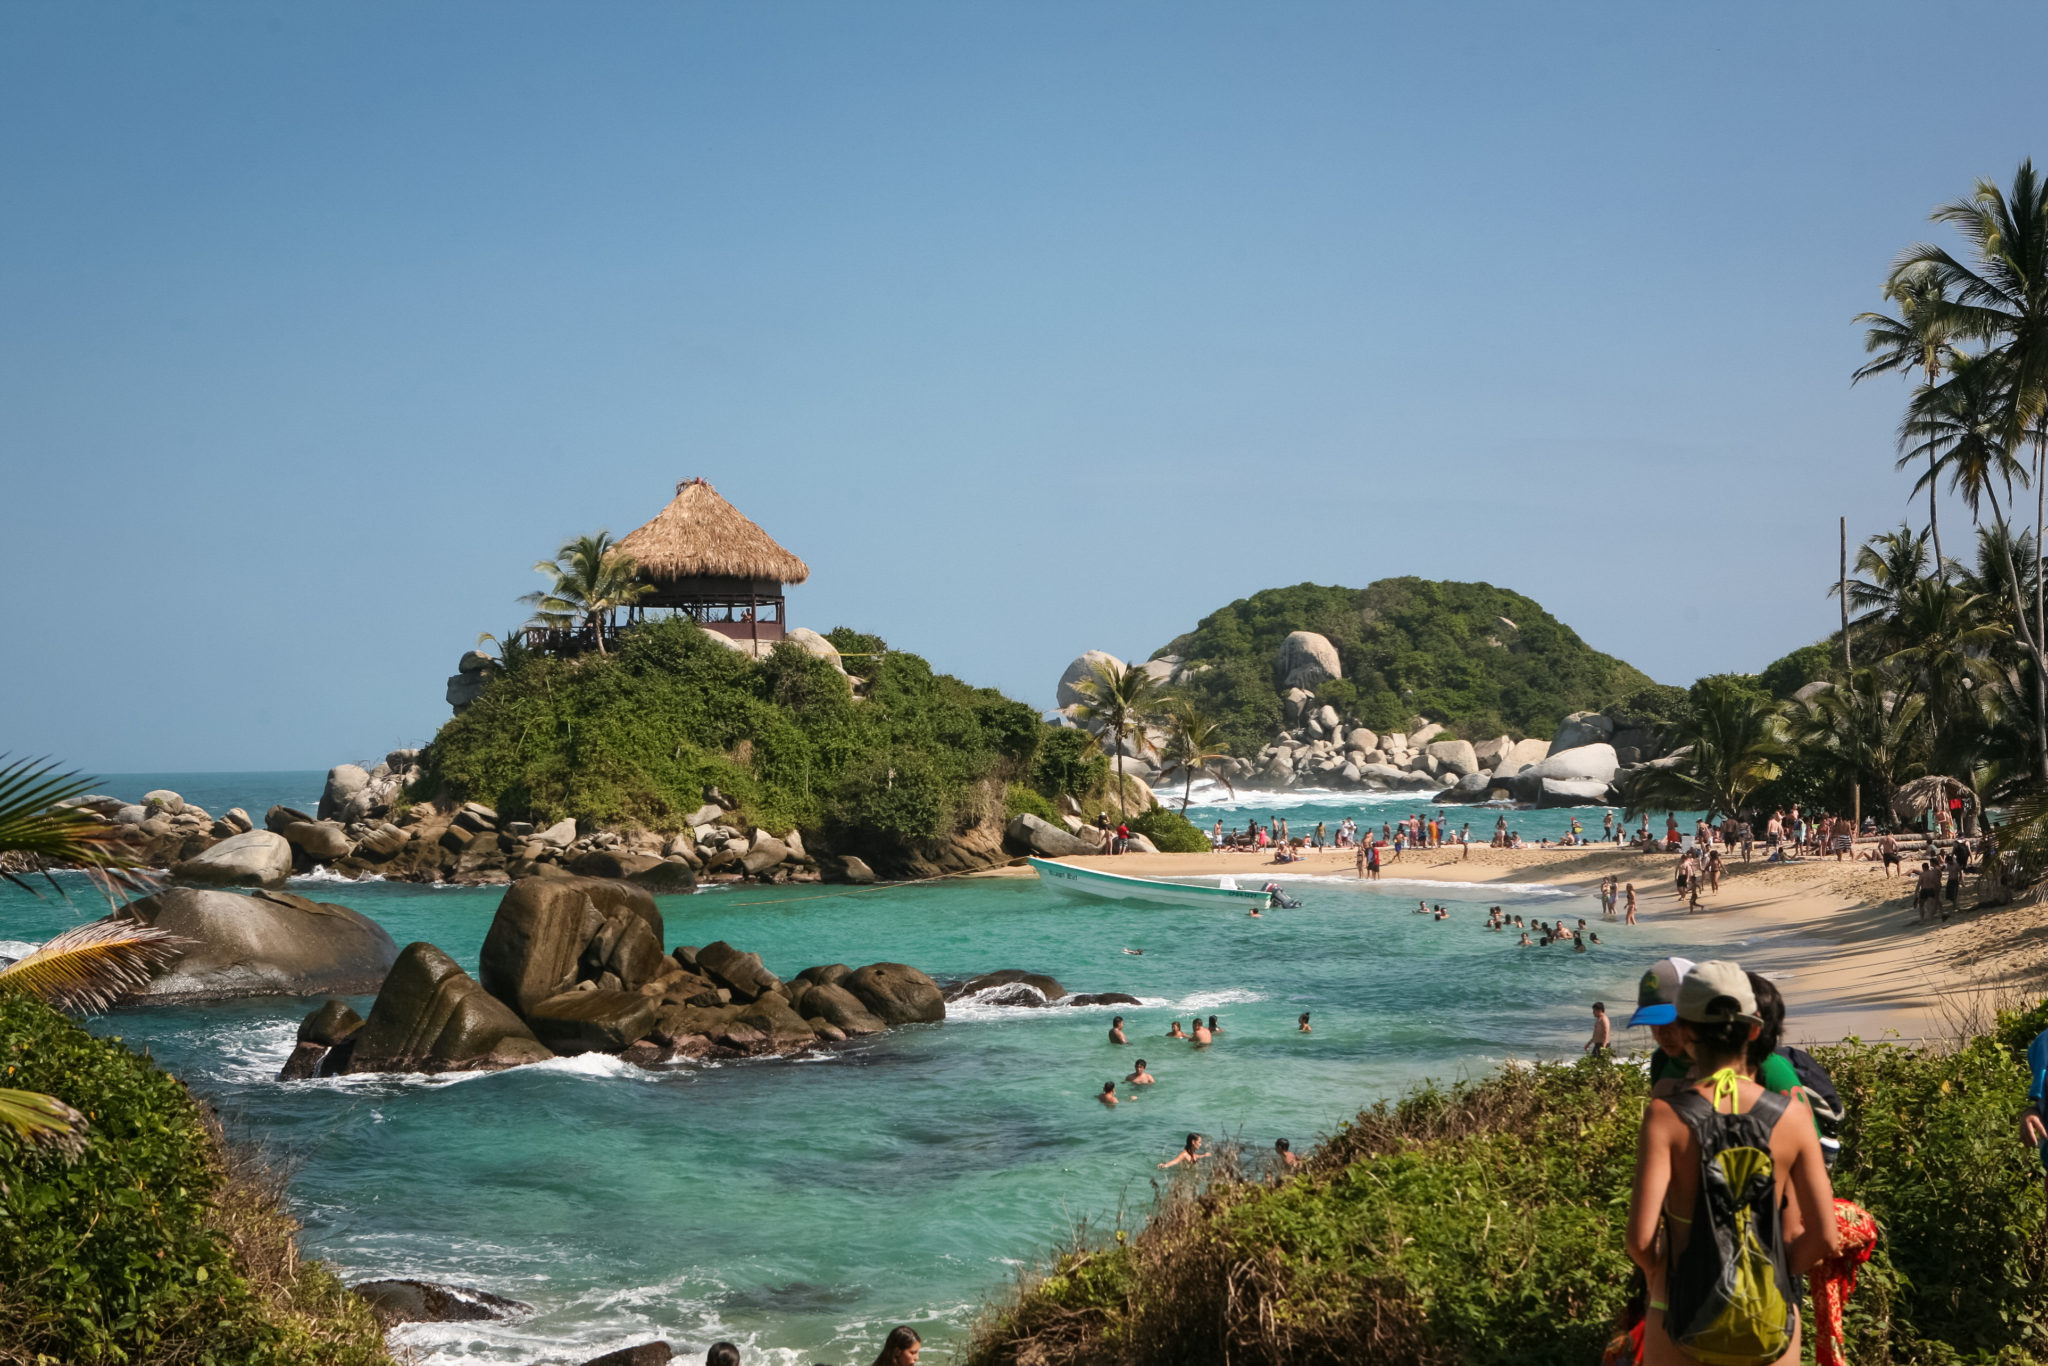 This is an image of the shore at the beach in Parque Tayrona